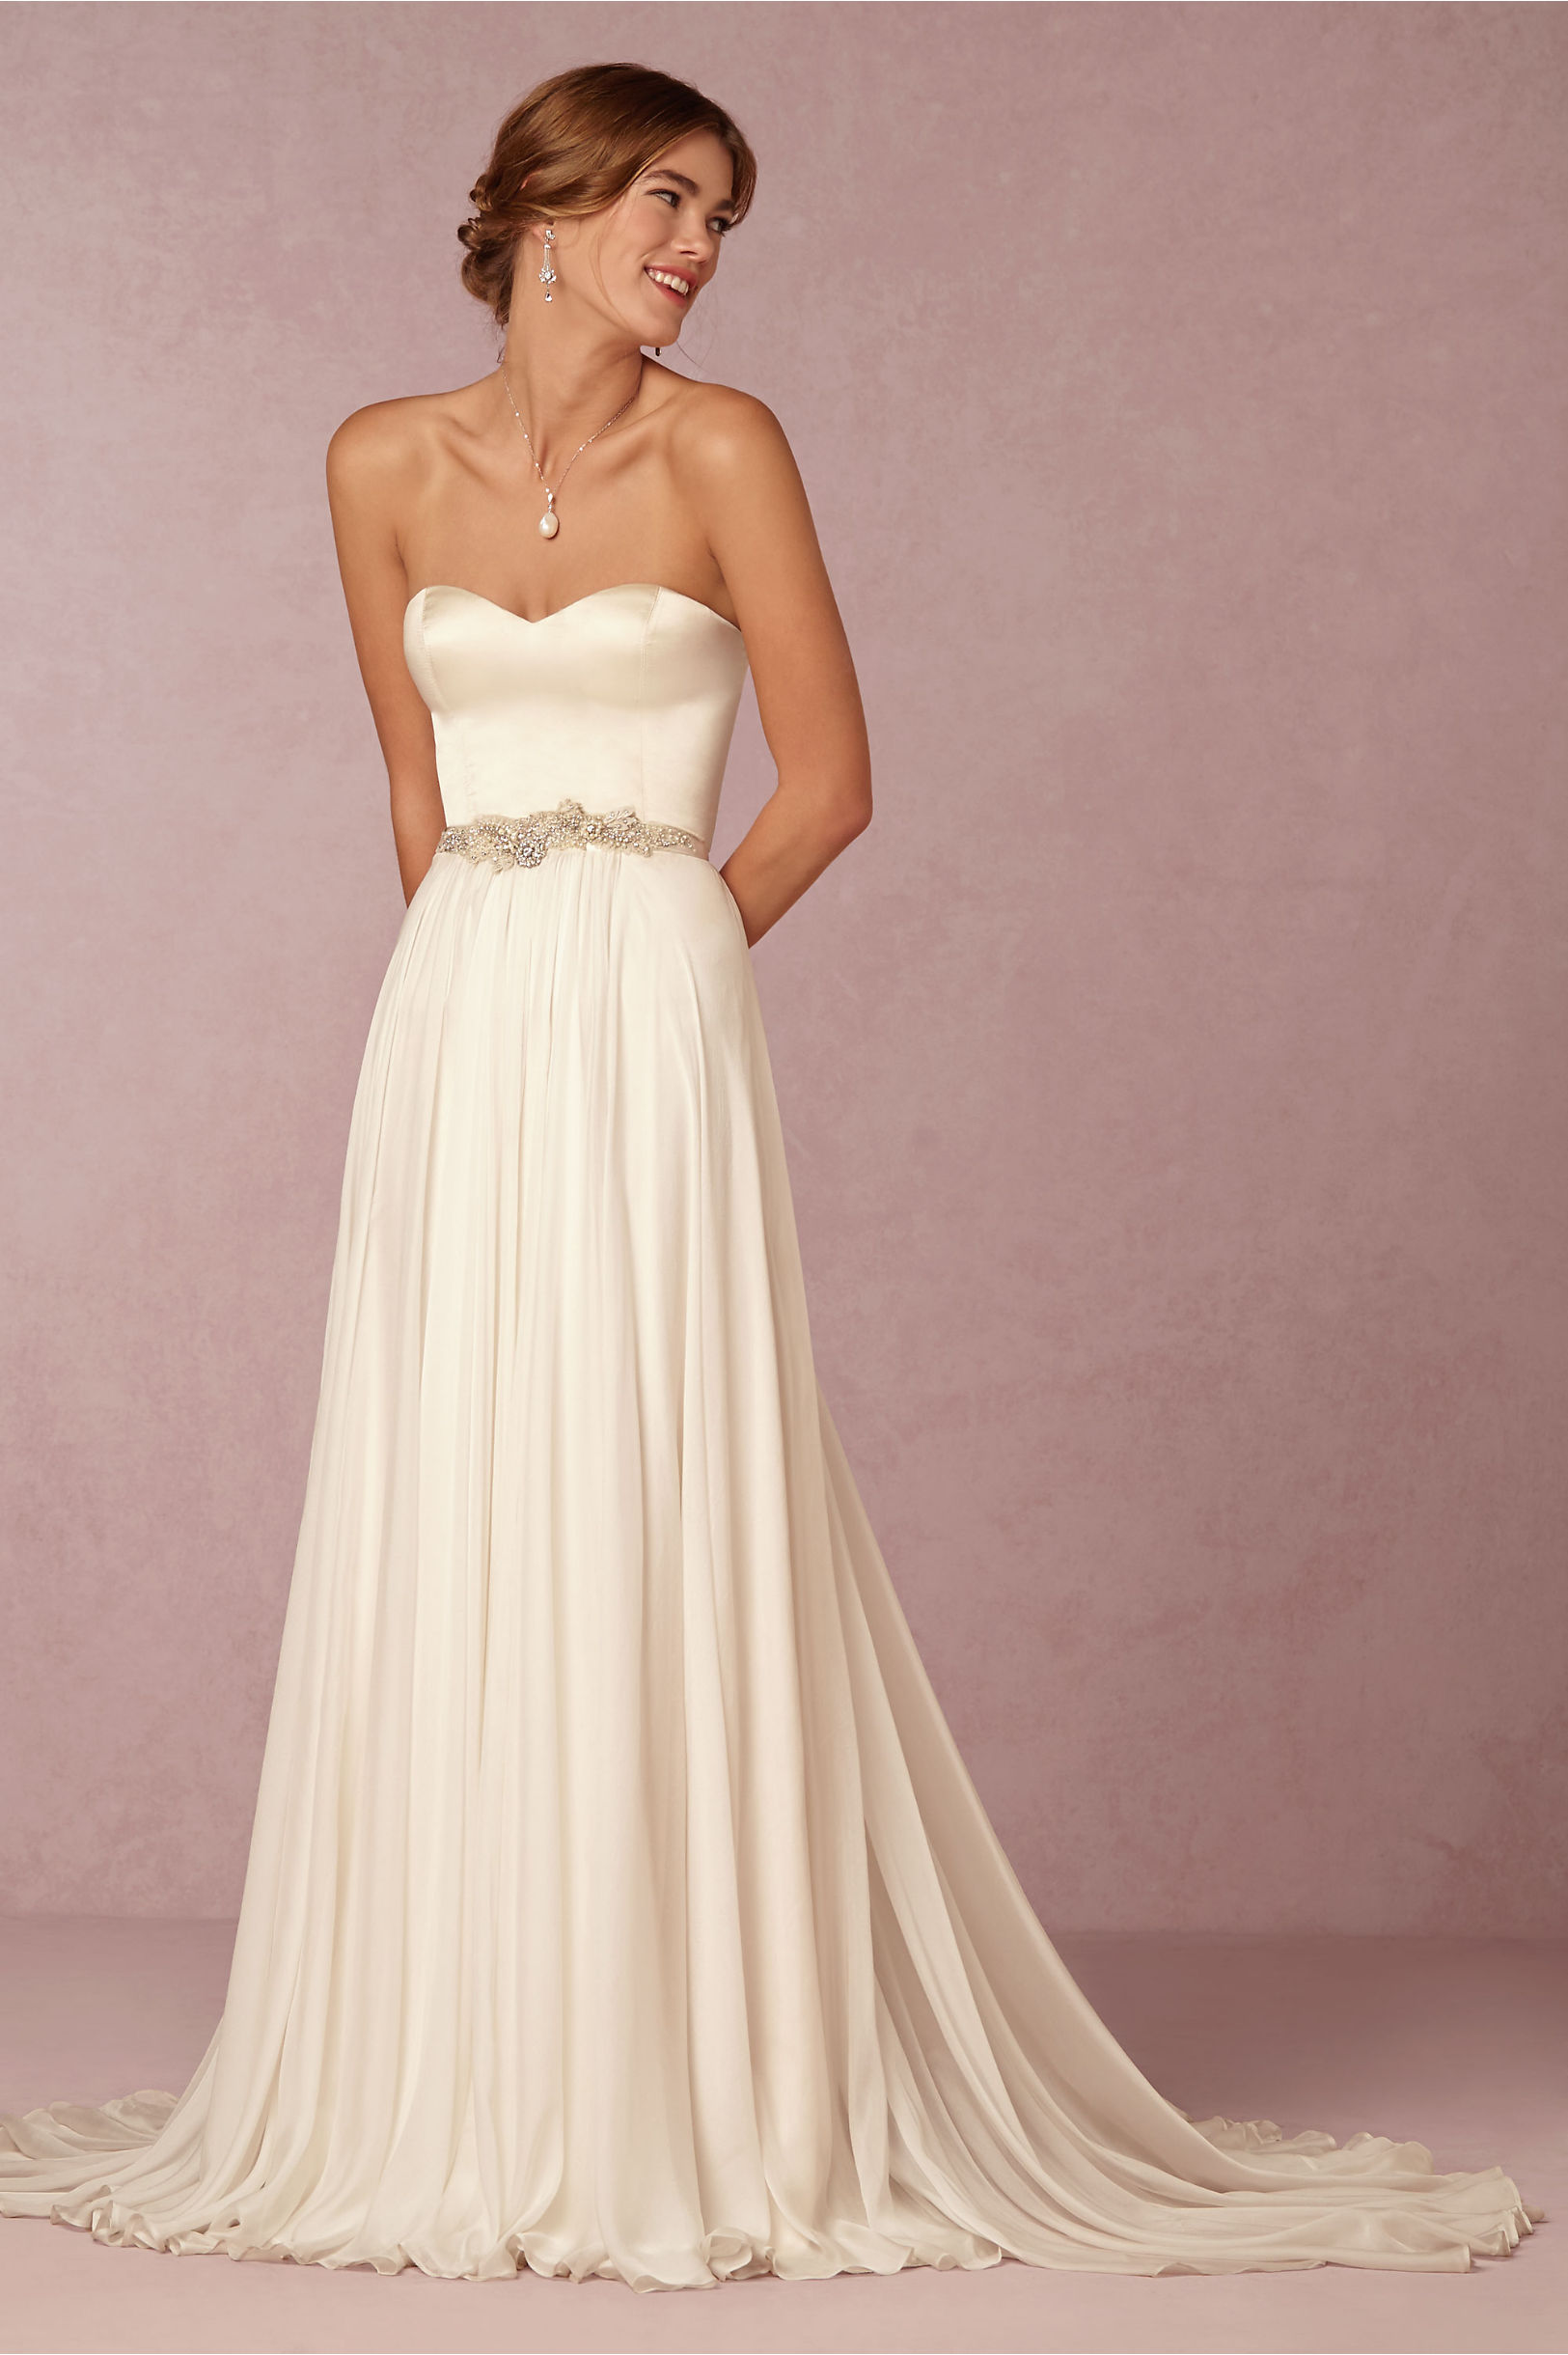 ffc357da8 Maxi Skirt And Top For Wedding Guest